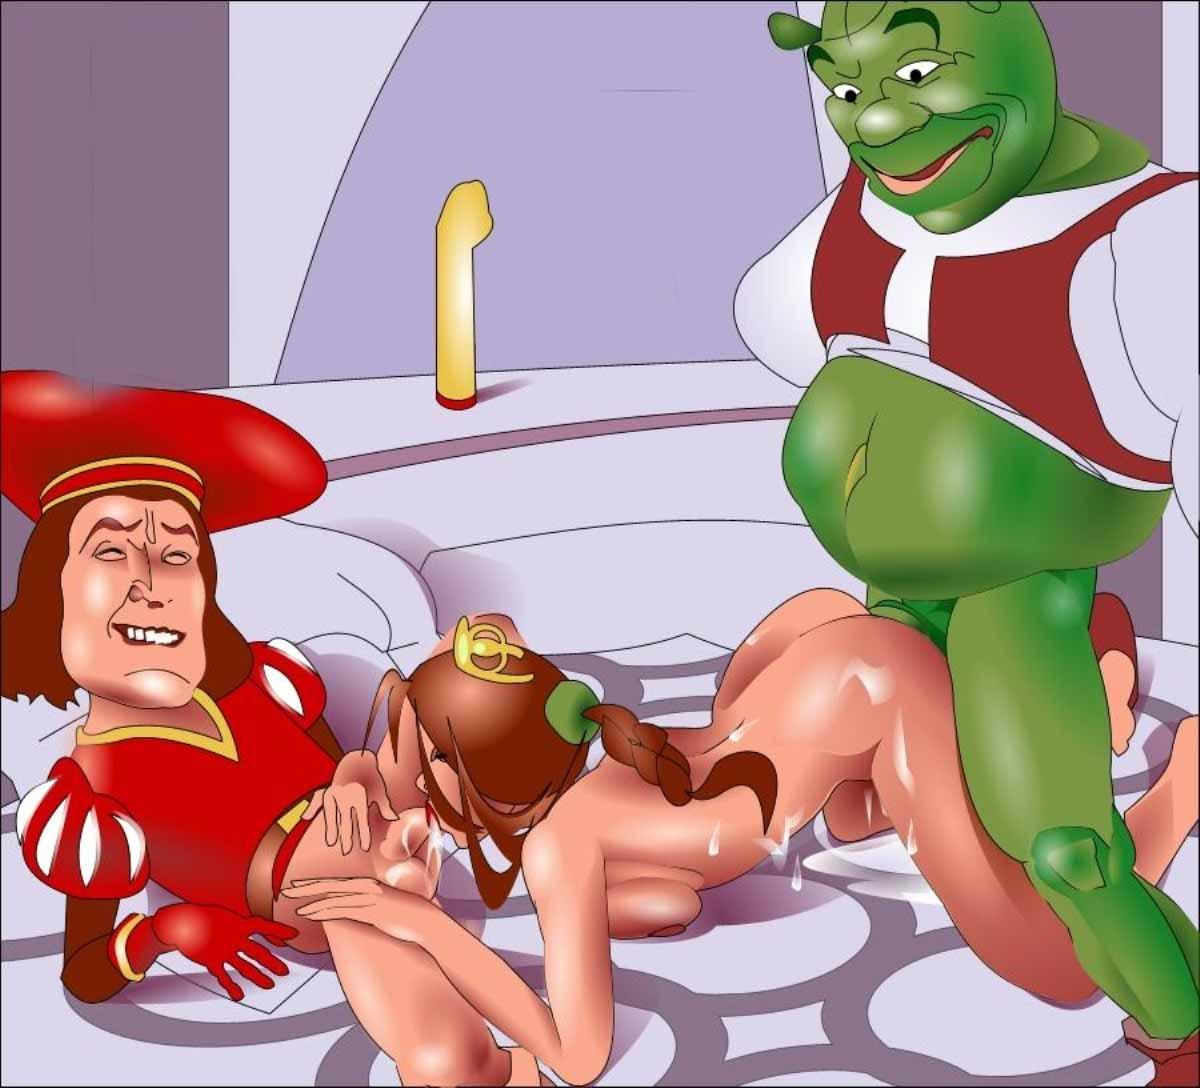 Shrek hentai images naked galleries